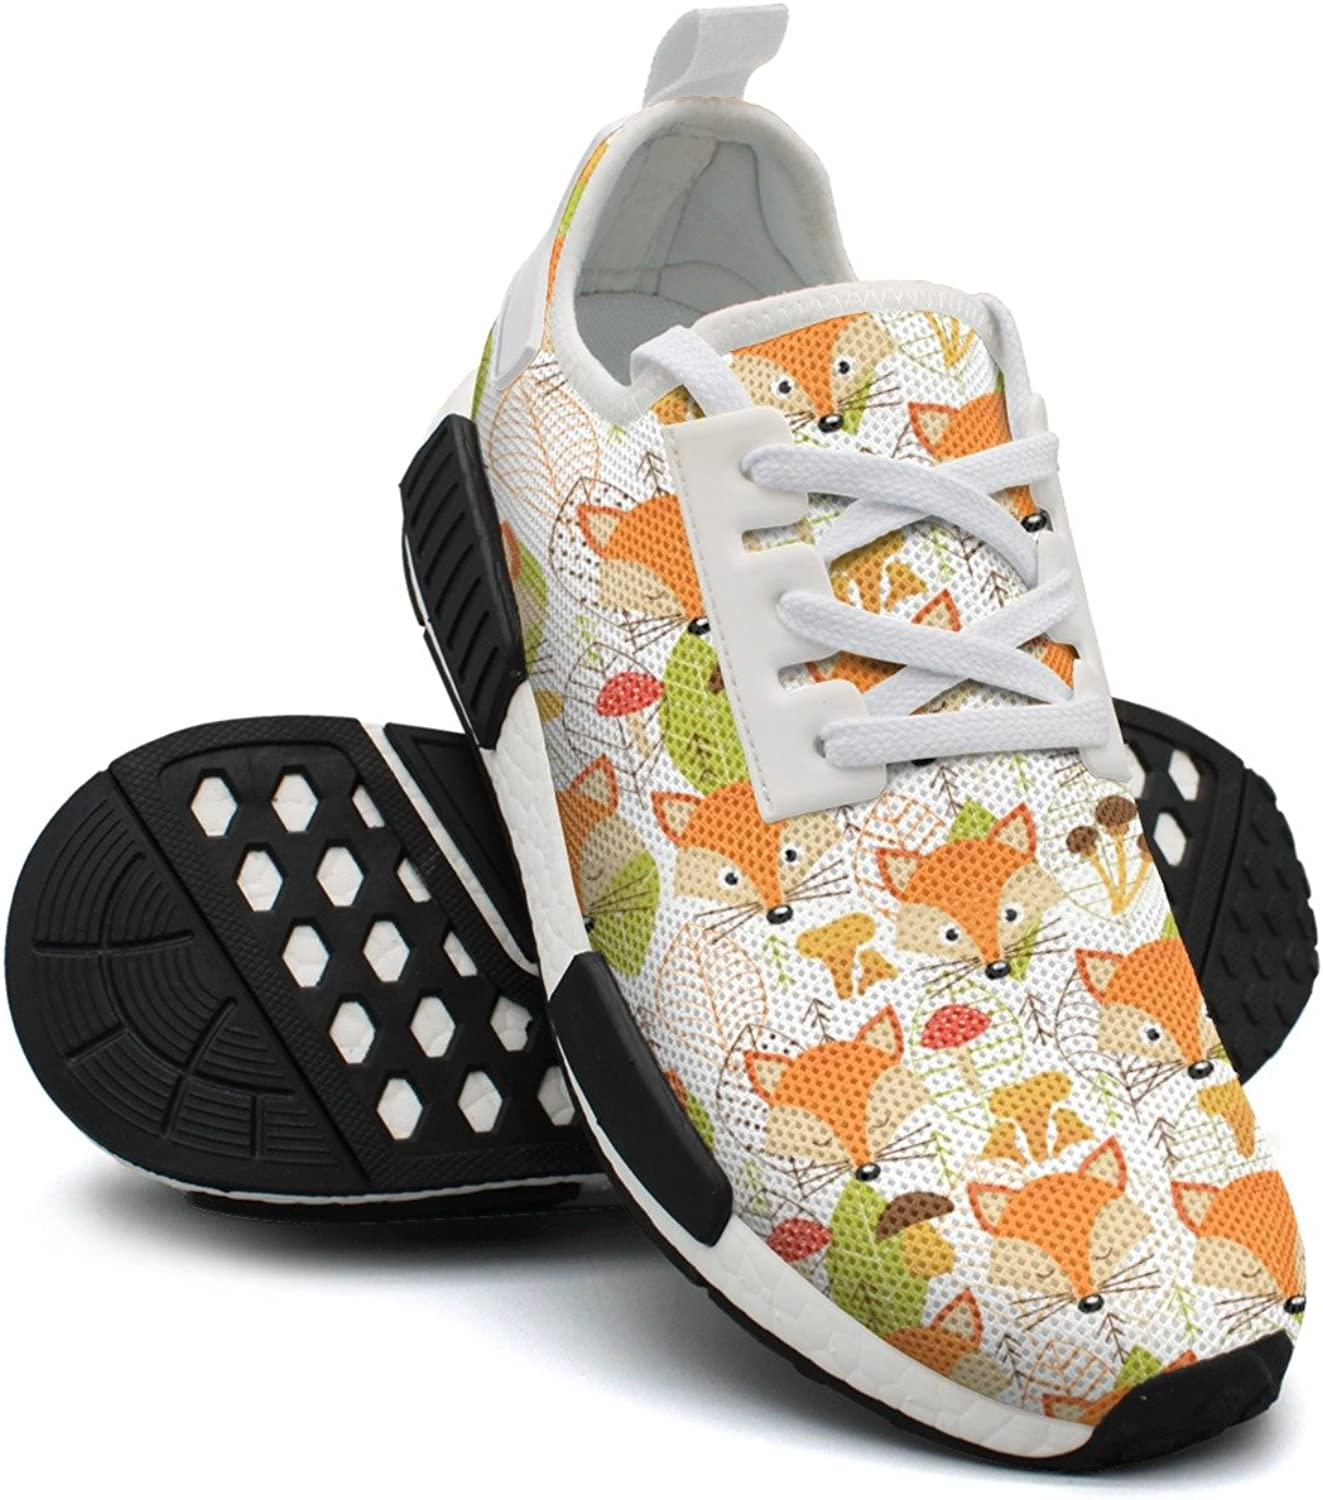 Fox Faces Womans Running shoes Nmd Gym Training shoes